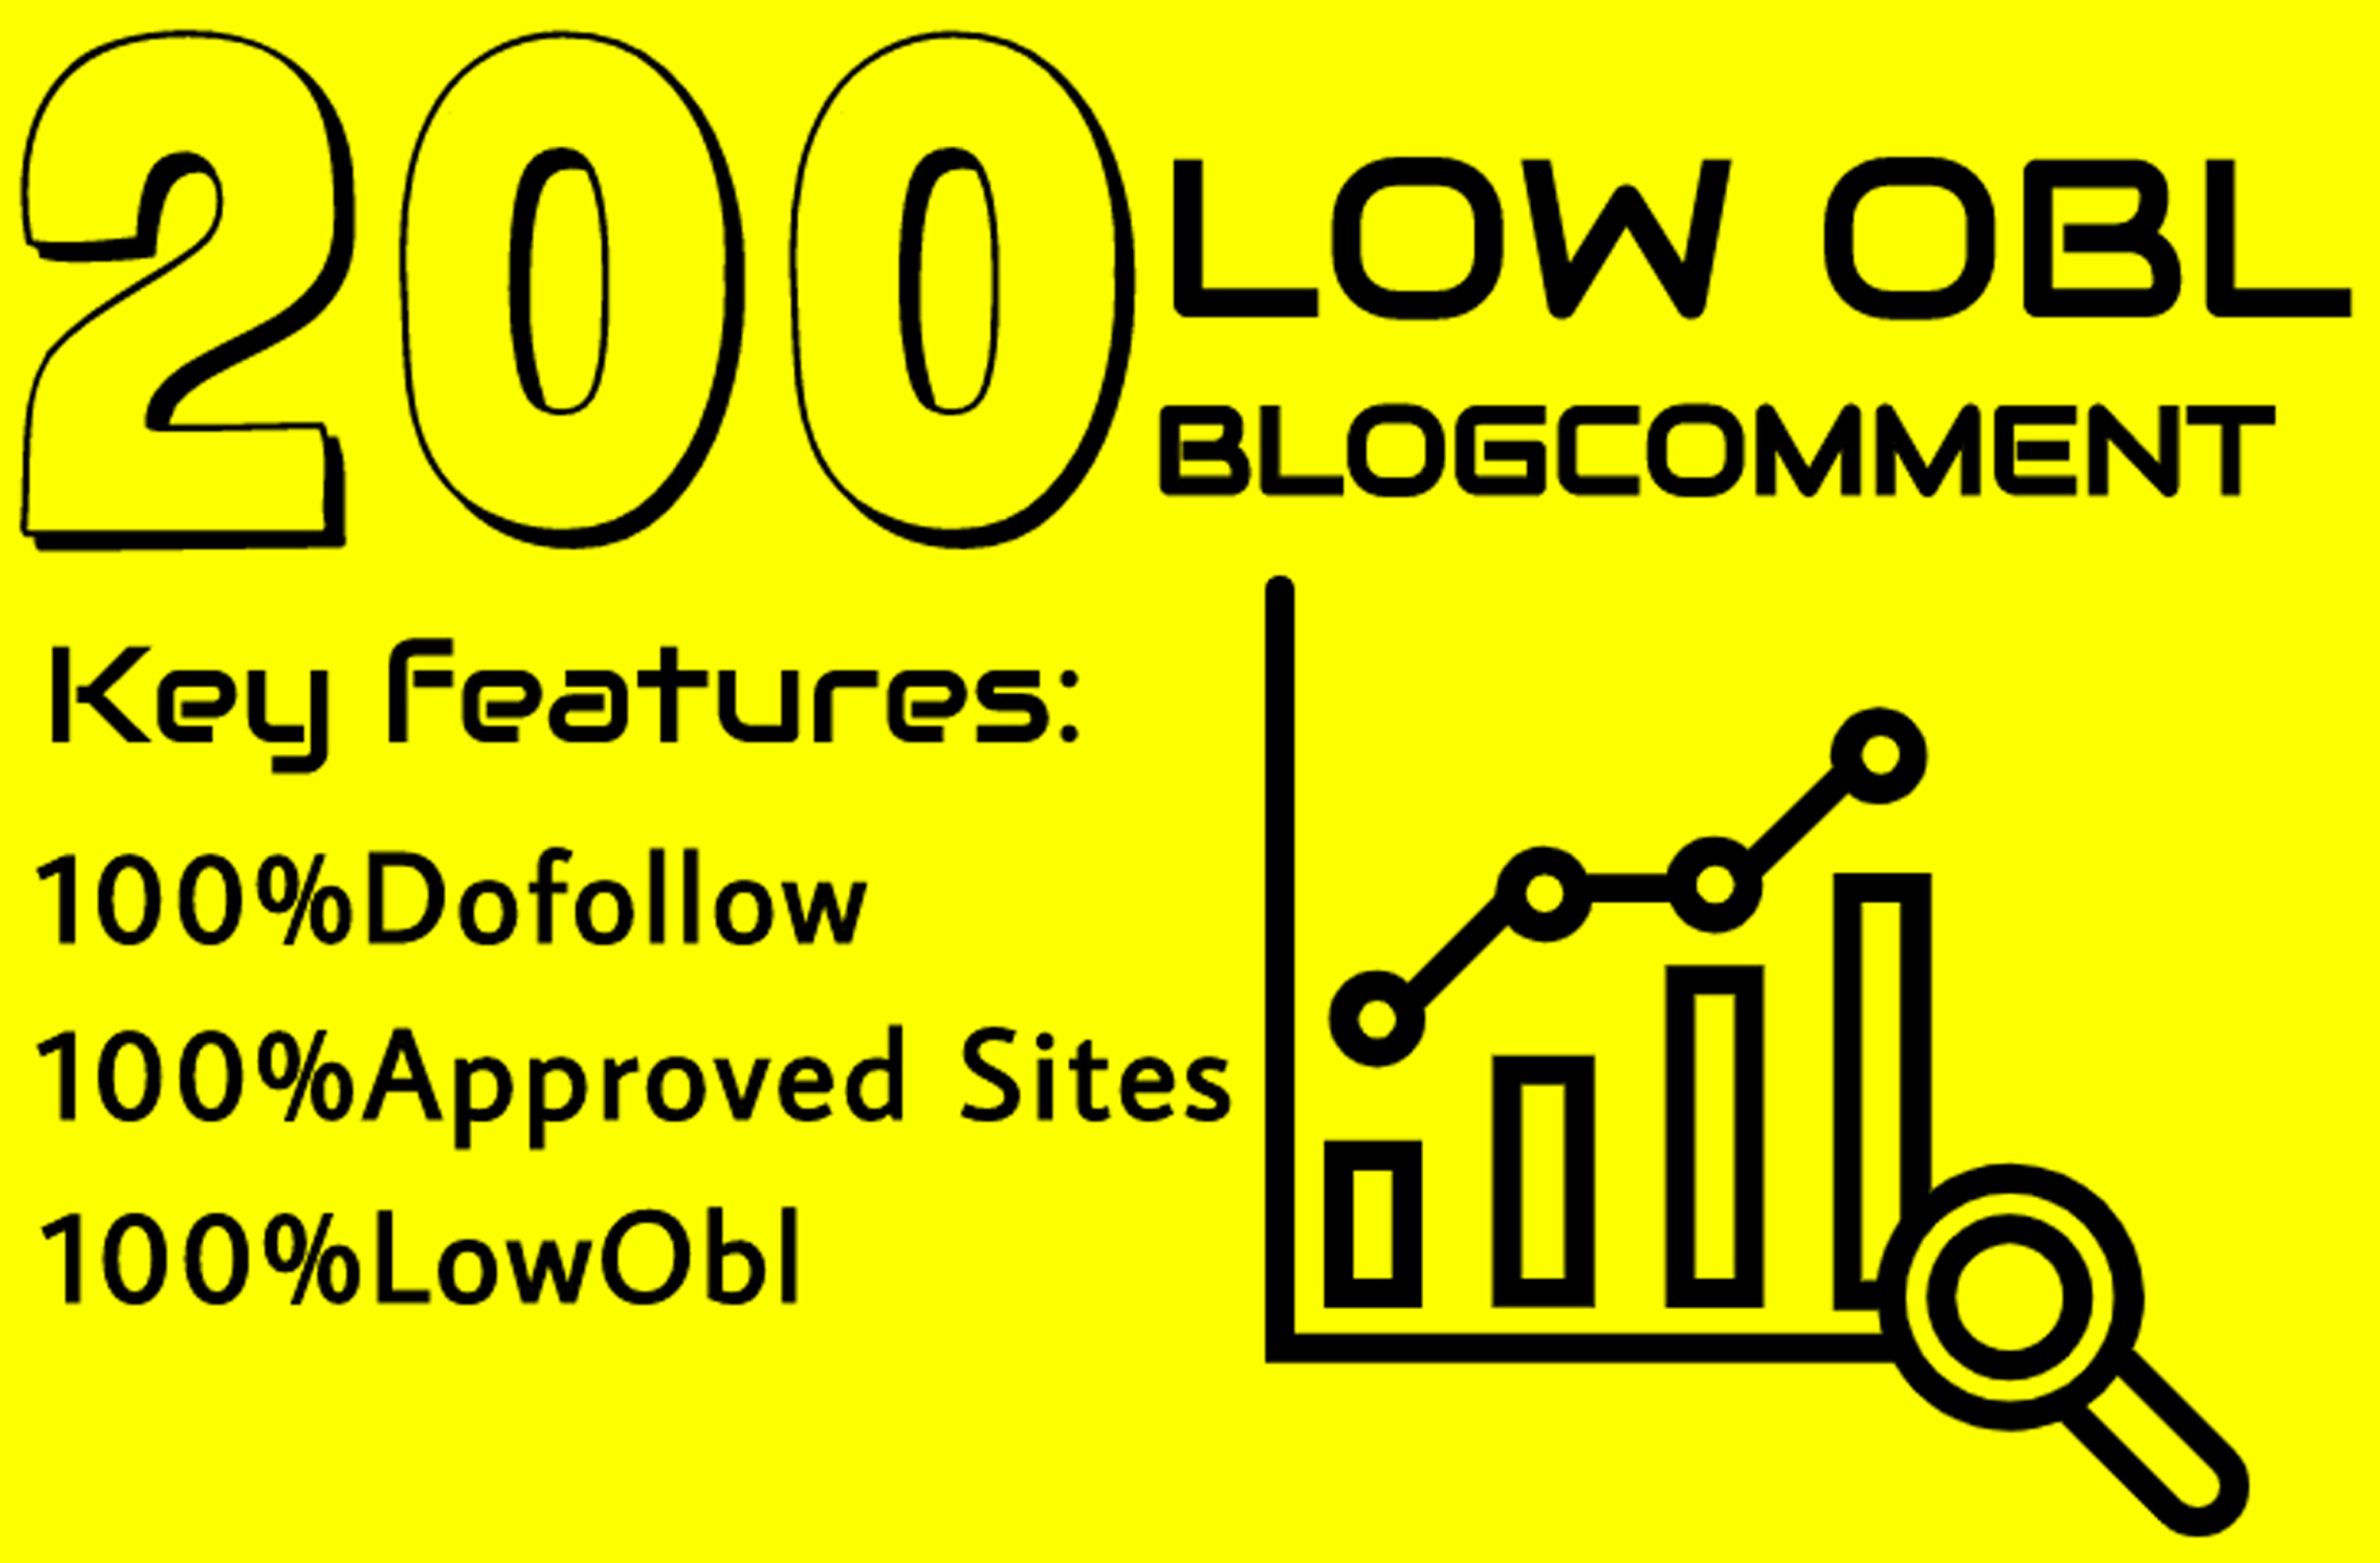 I will do 200 dofollow blog comment low obl